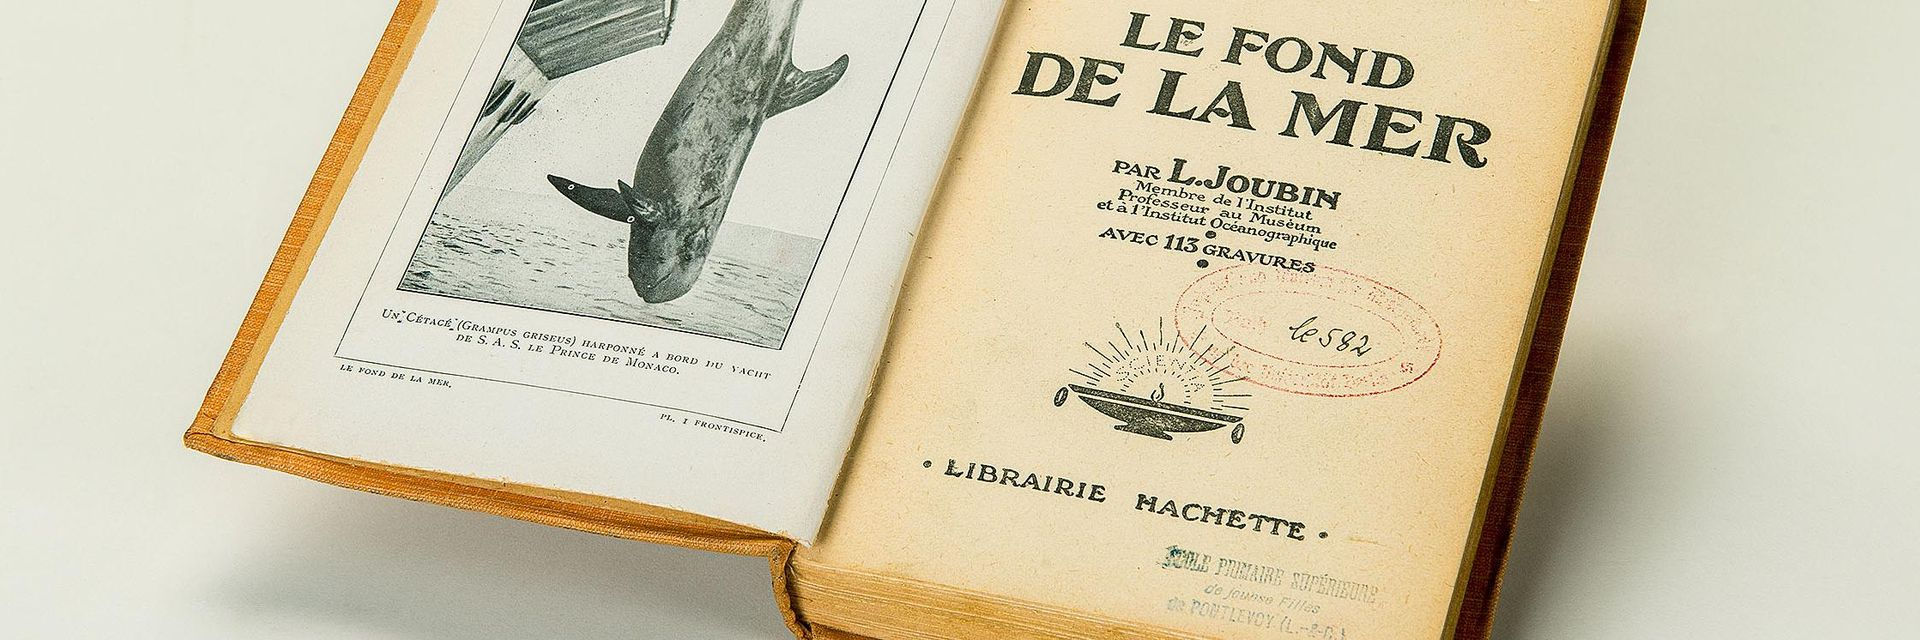 "Two library stamp imprints are seen on the title page of an open book. They are centered under the heading ""Le fond de la mer,"" which is French for ""The Seabed""."